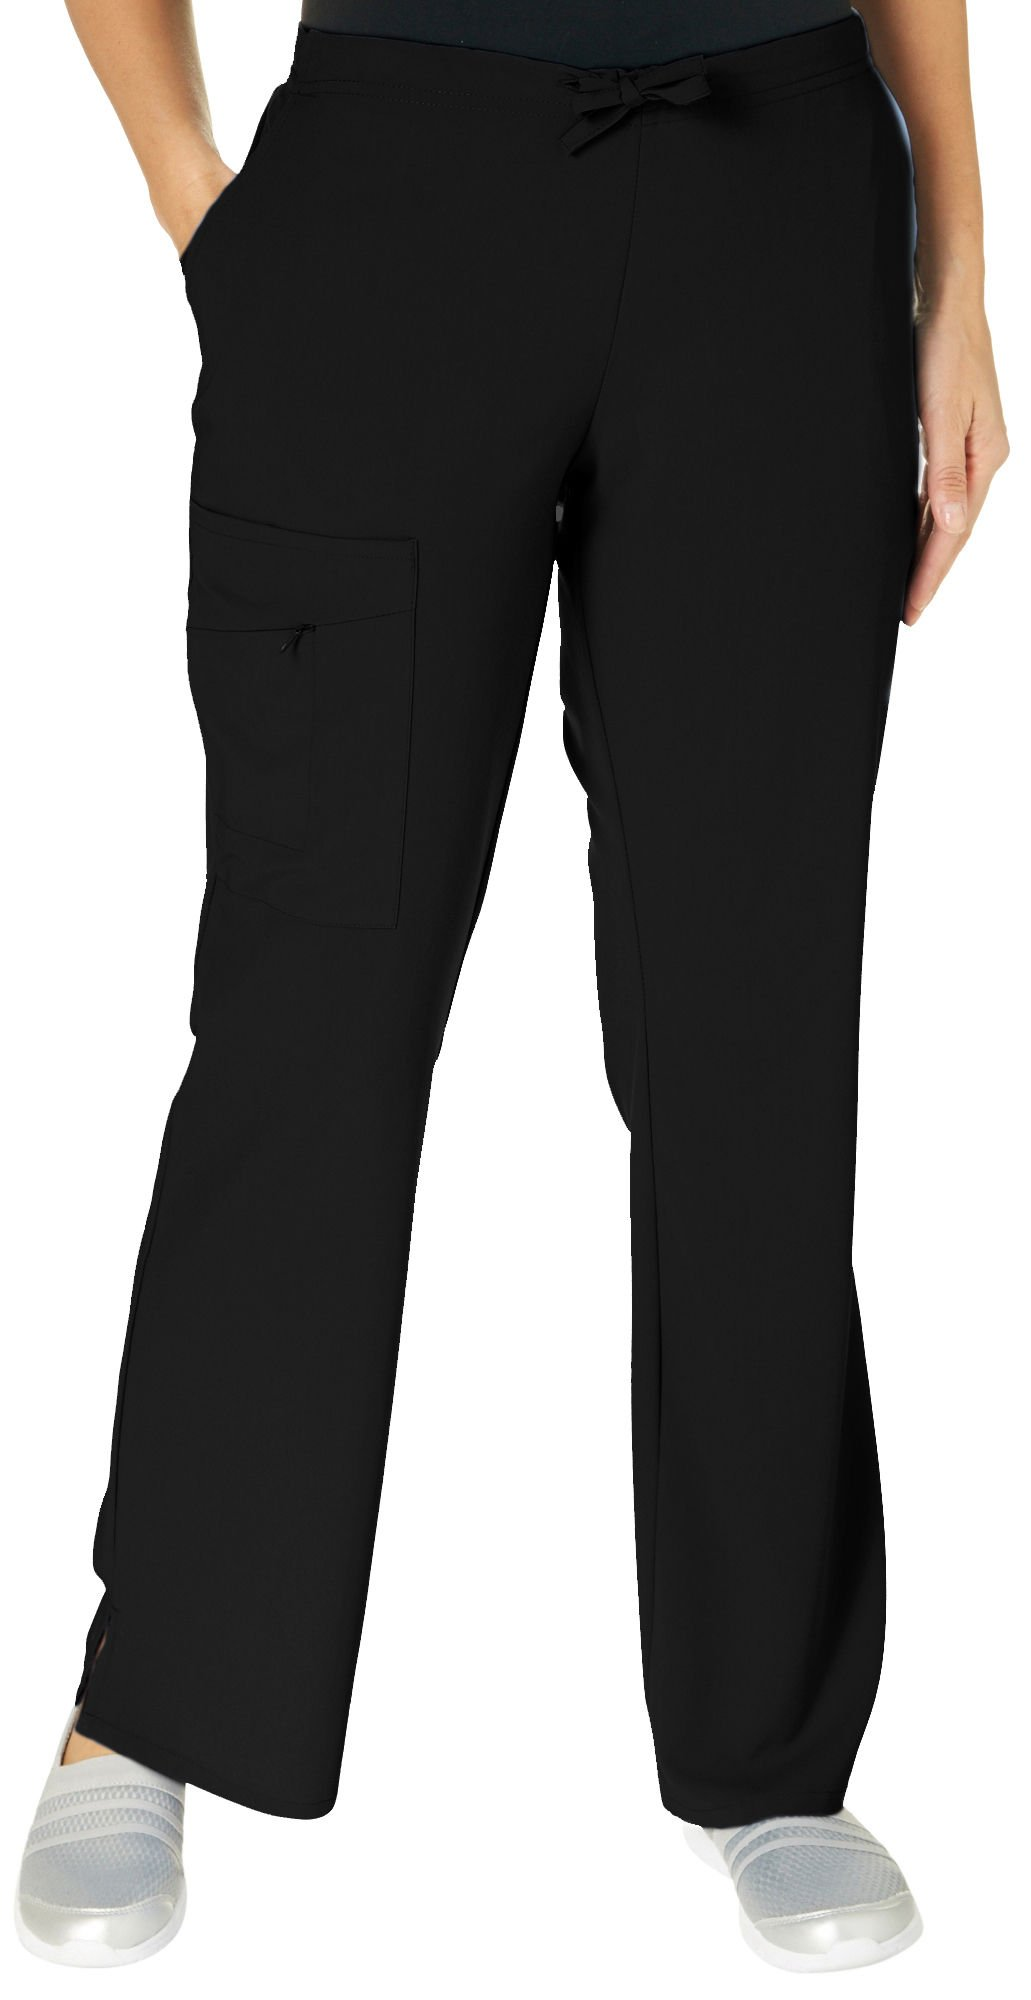 Jockey Women's Scrubs Scrub Pant, Black, XL